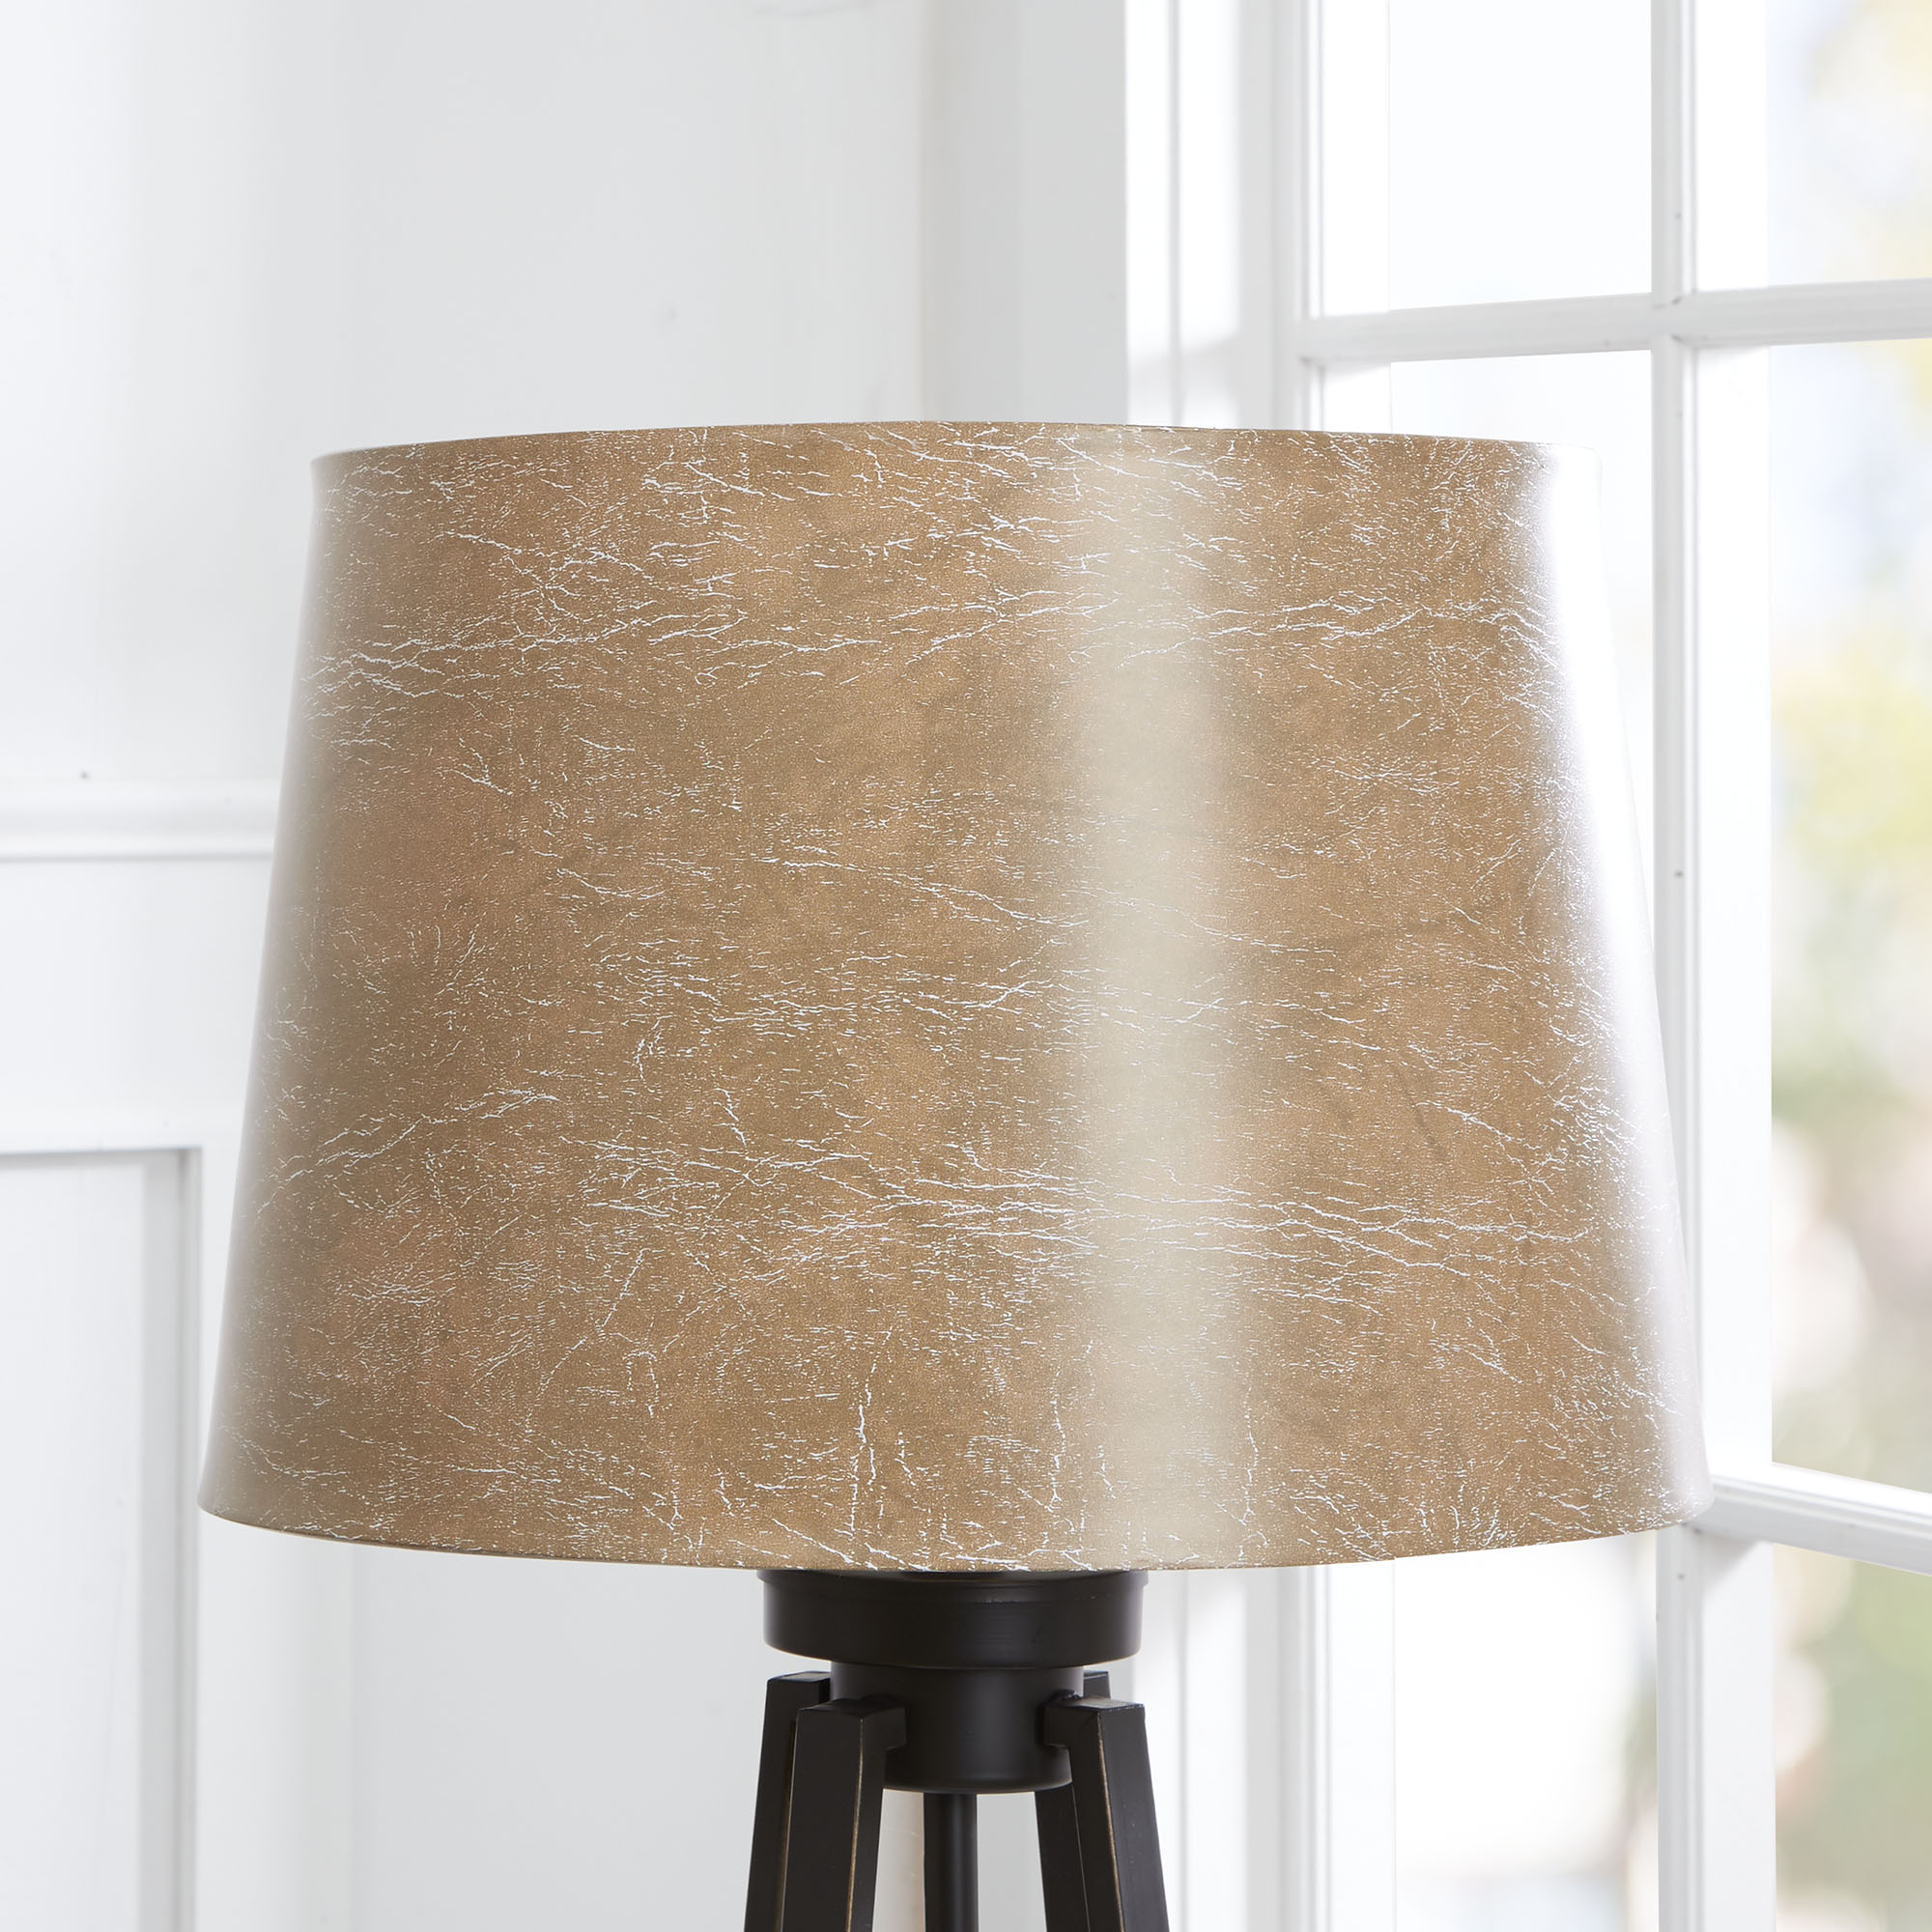 Better Homes & Gardens Faux Distressed Leather Drum Lampshade by Cheyenne Products